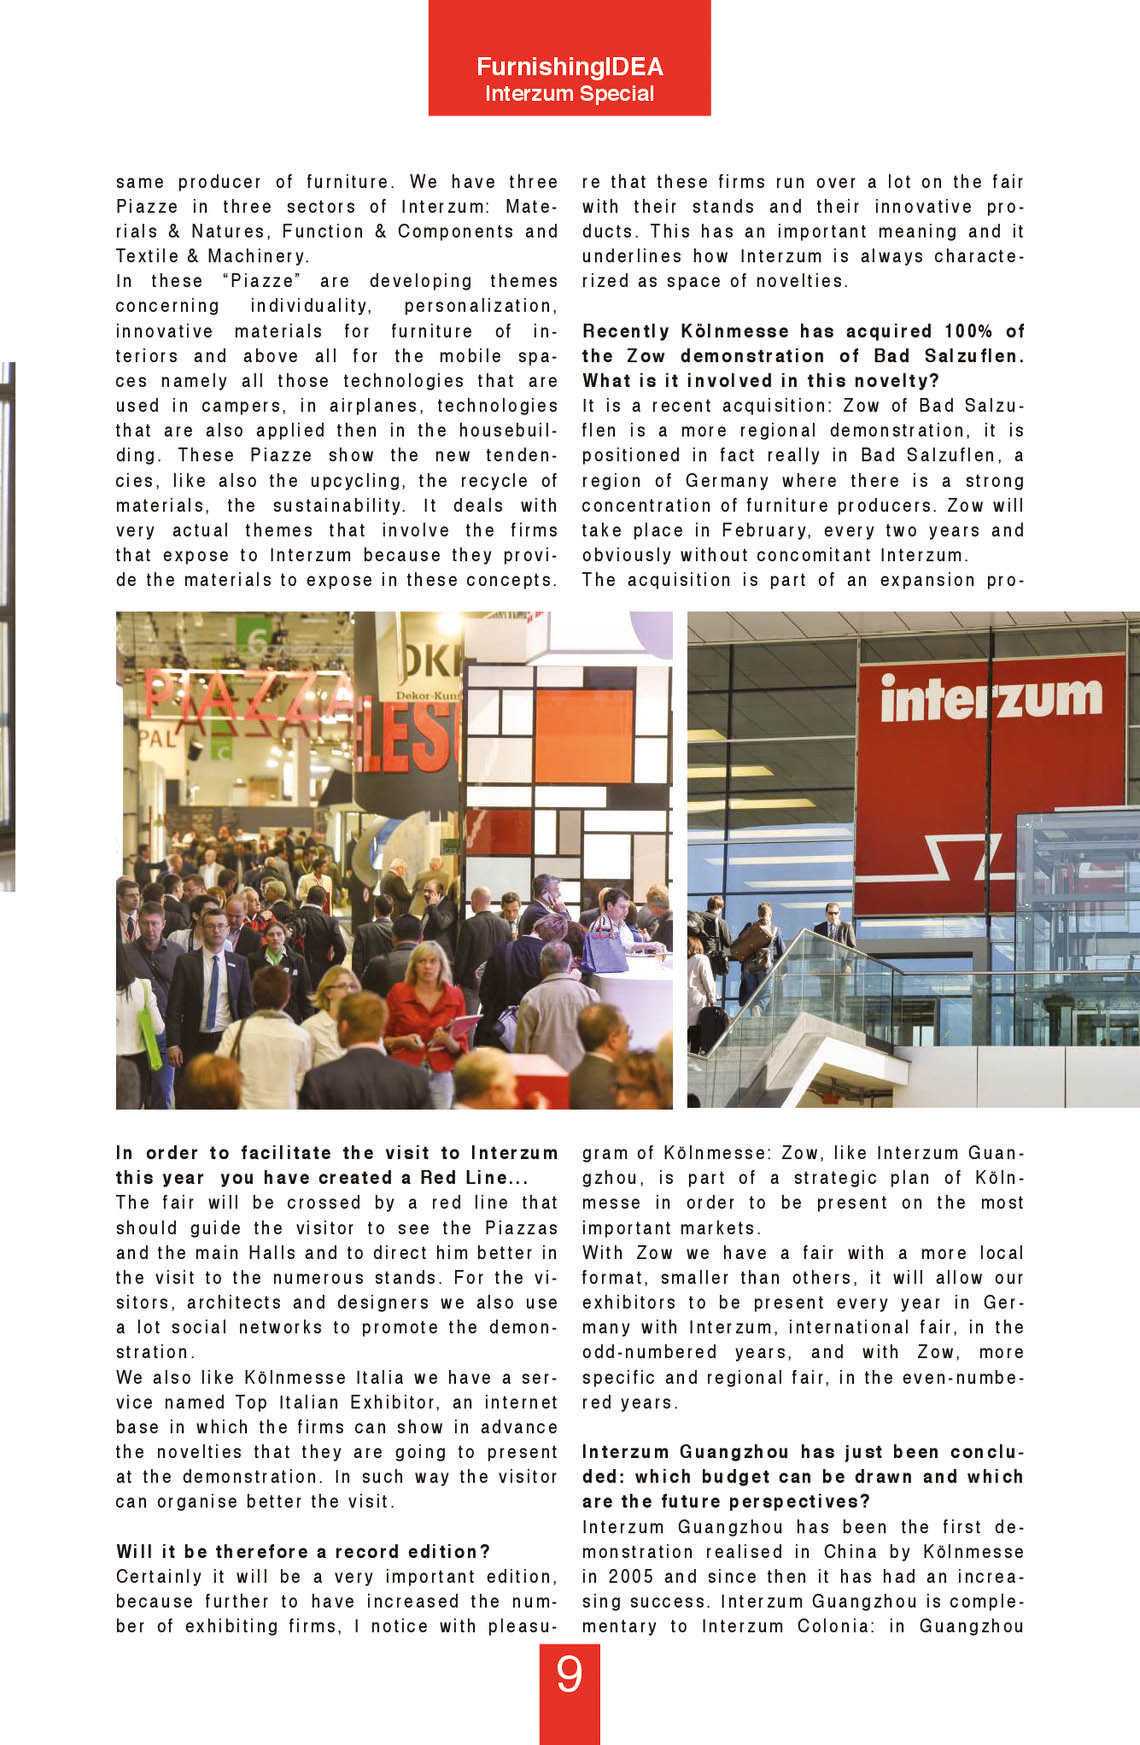 interzum-2017-_journal_5_008.jpg